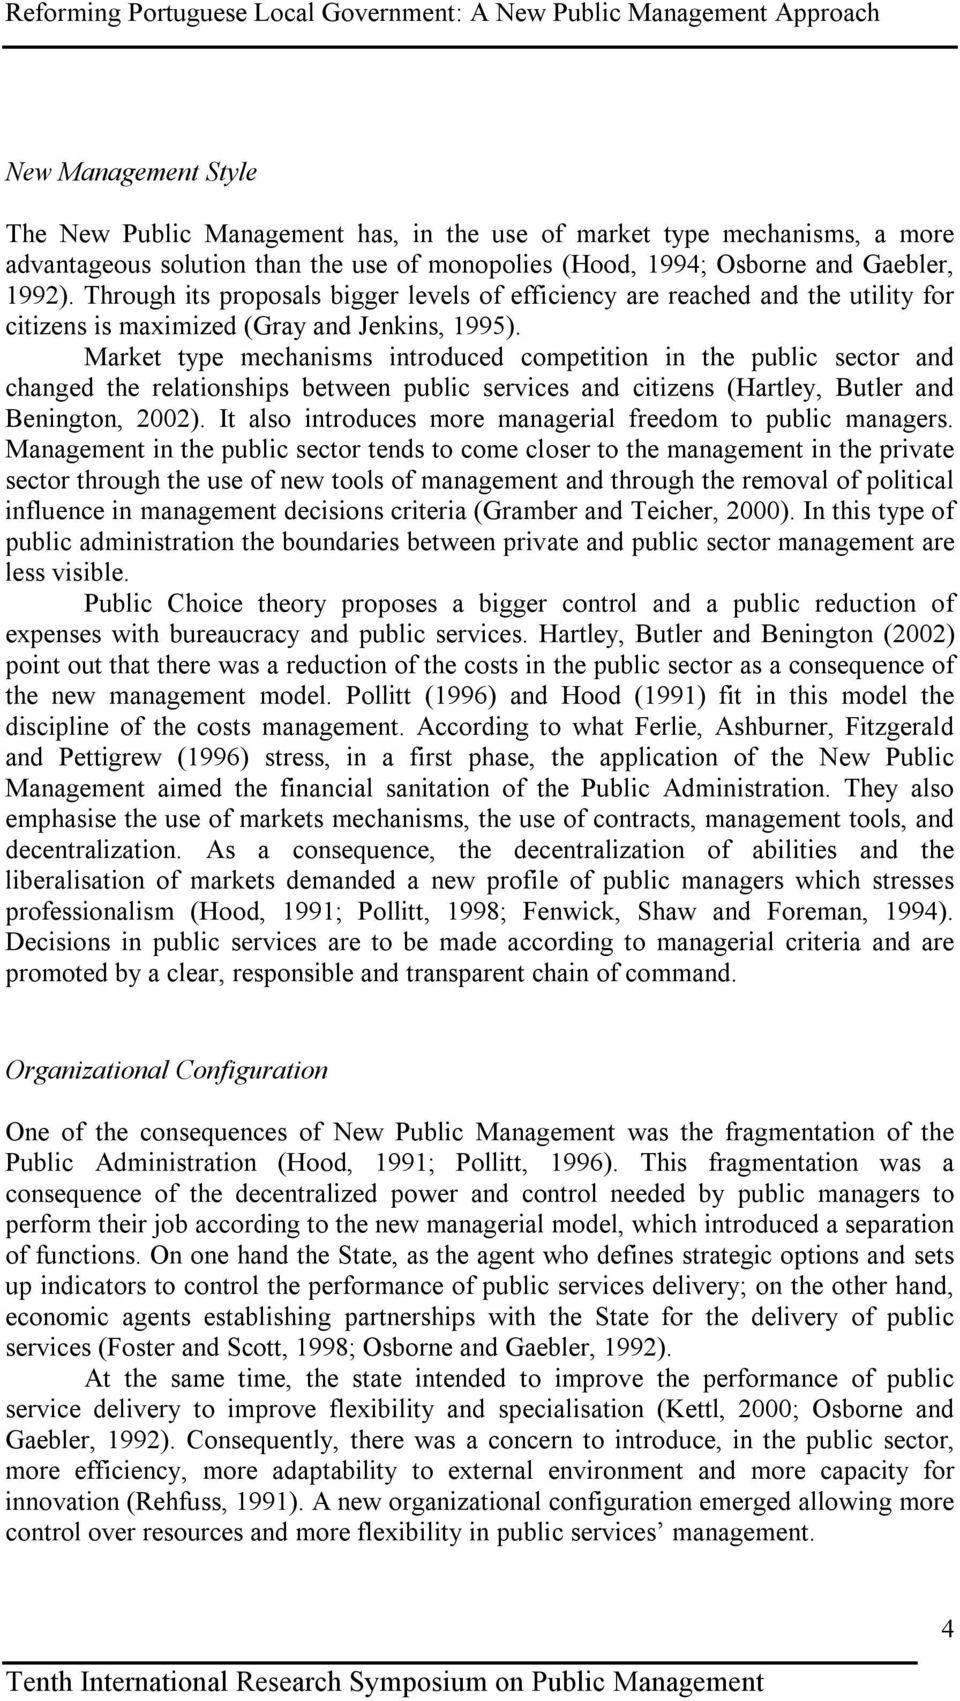 Market type mechanisms introduced competition in the public sector and changed the relationships between public services and citizens (Hartley, Butler and Benington, 2002).